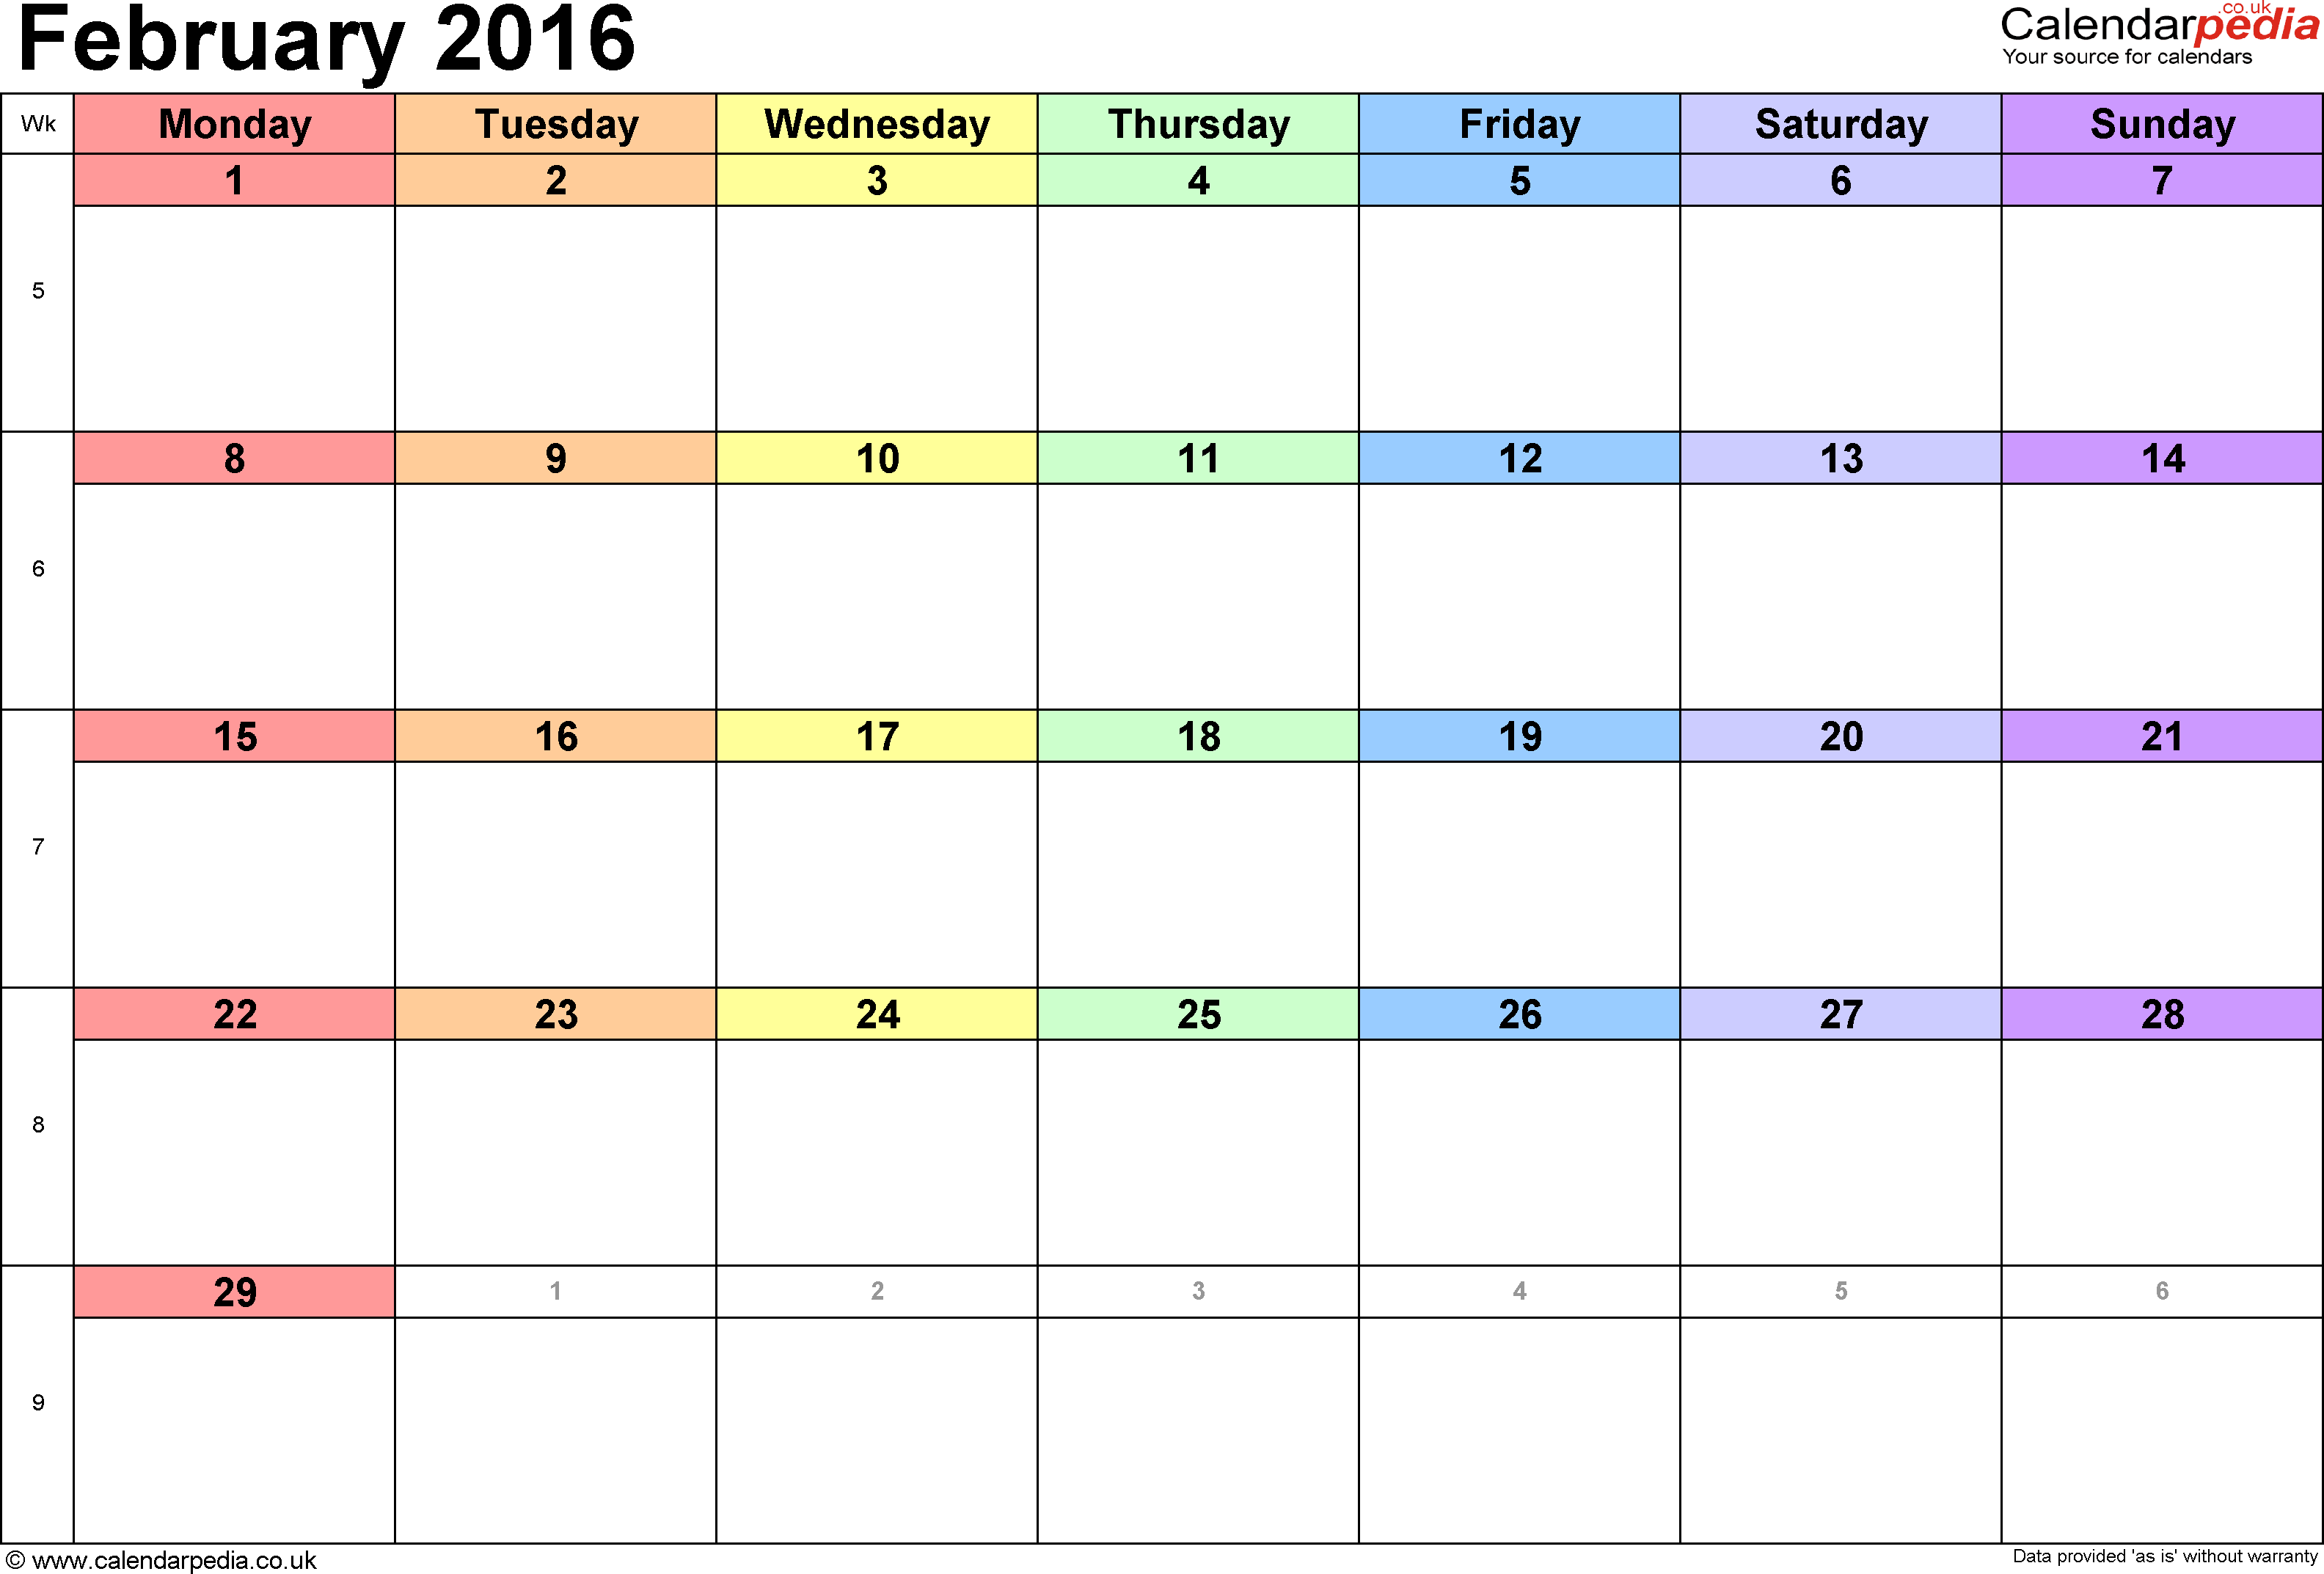 Calendar February 2016, landscape orientation, 1 page, with UK bank holidays and week numbers